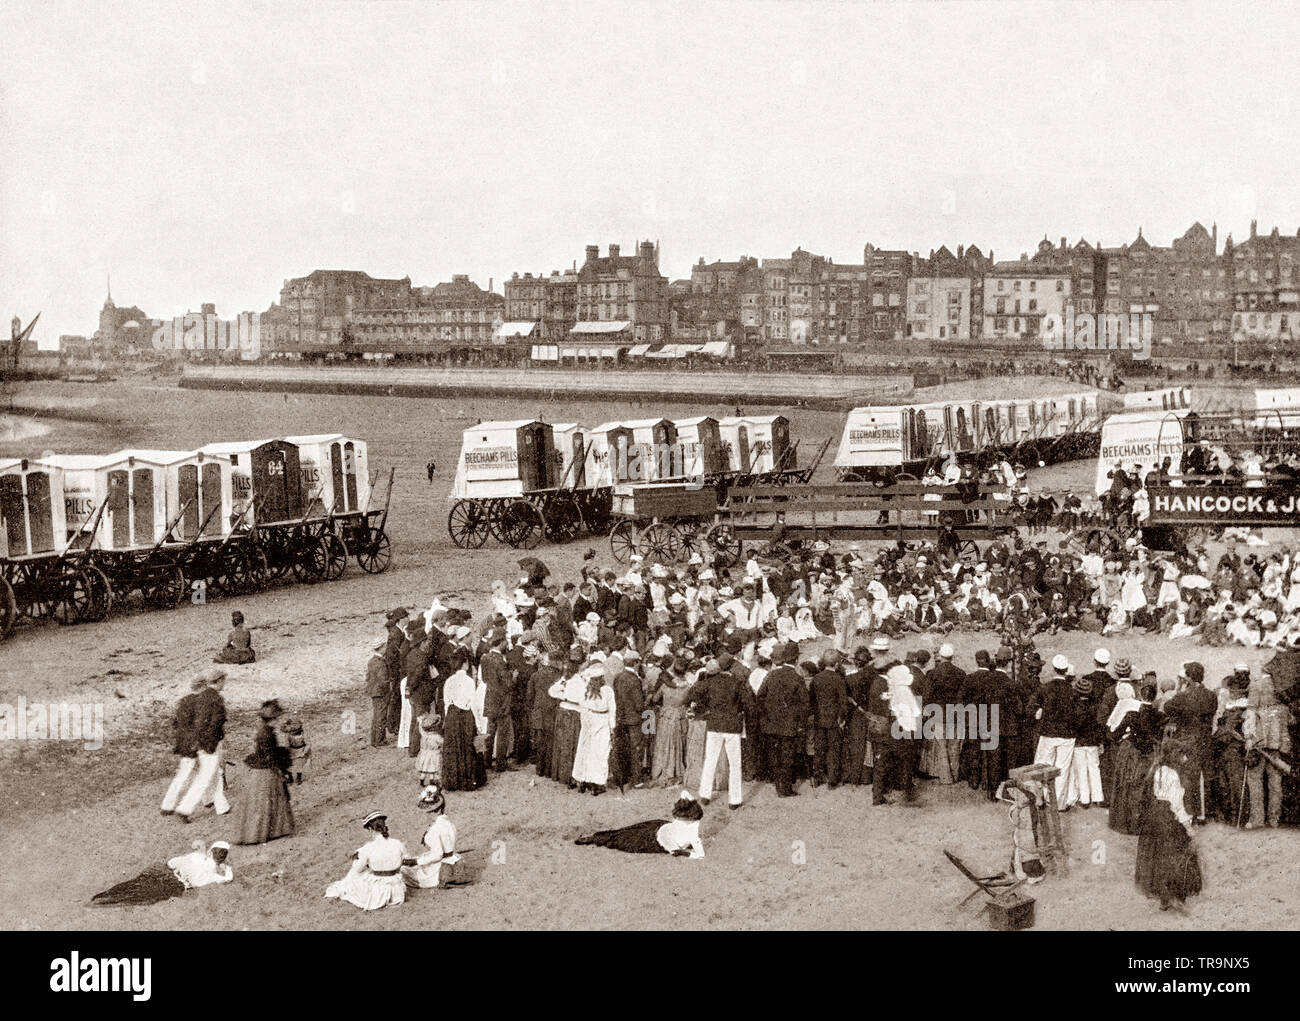 A 19th Century view of beach huts and crowd watching beach entertainment at Margate, a seaside town in Thanet, Kent, South East England. Margate has been a leading seaside resort and a traditional holiday destination for Londoners drawn to its sandy beaches, for at least 250 years. - Stock Image